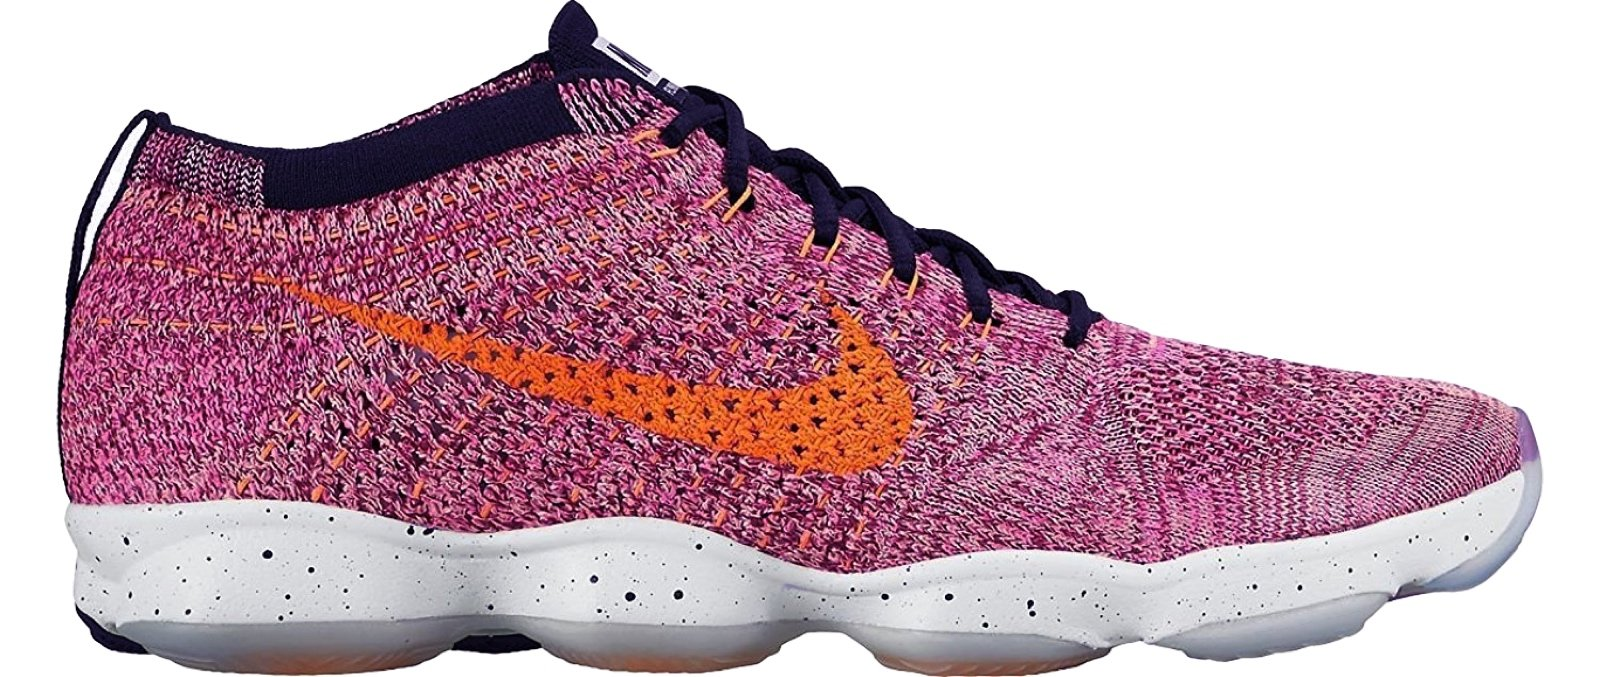 nike womens flyknit zoom agility running trainers 698616 sneakers shoes (US 9, pink power bright citrus black 602) by NIKE